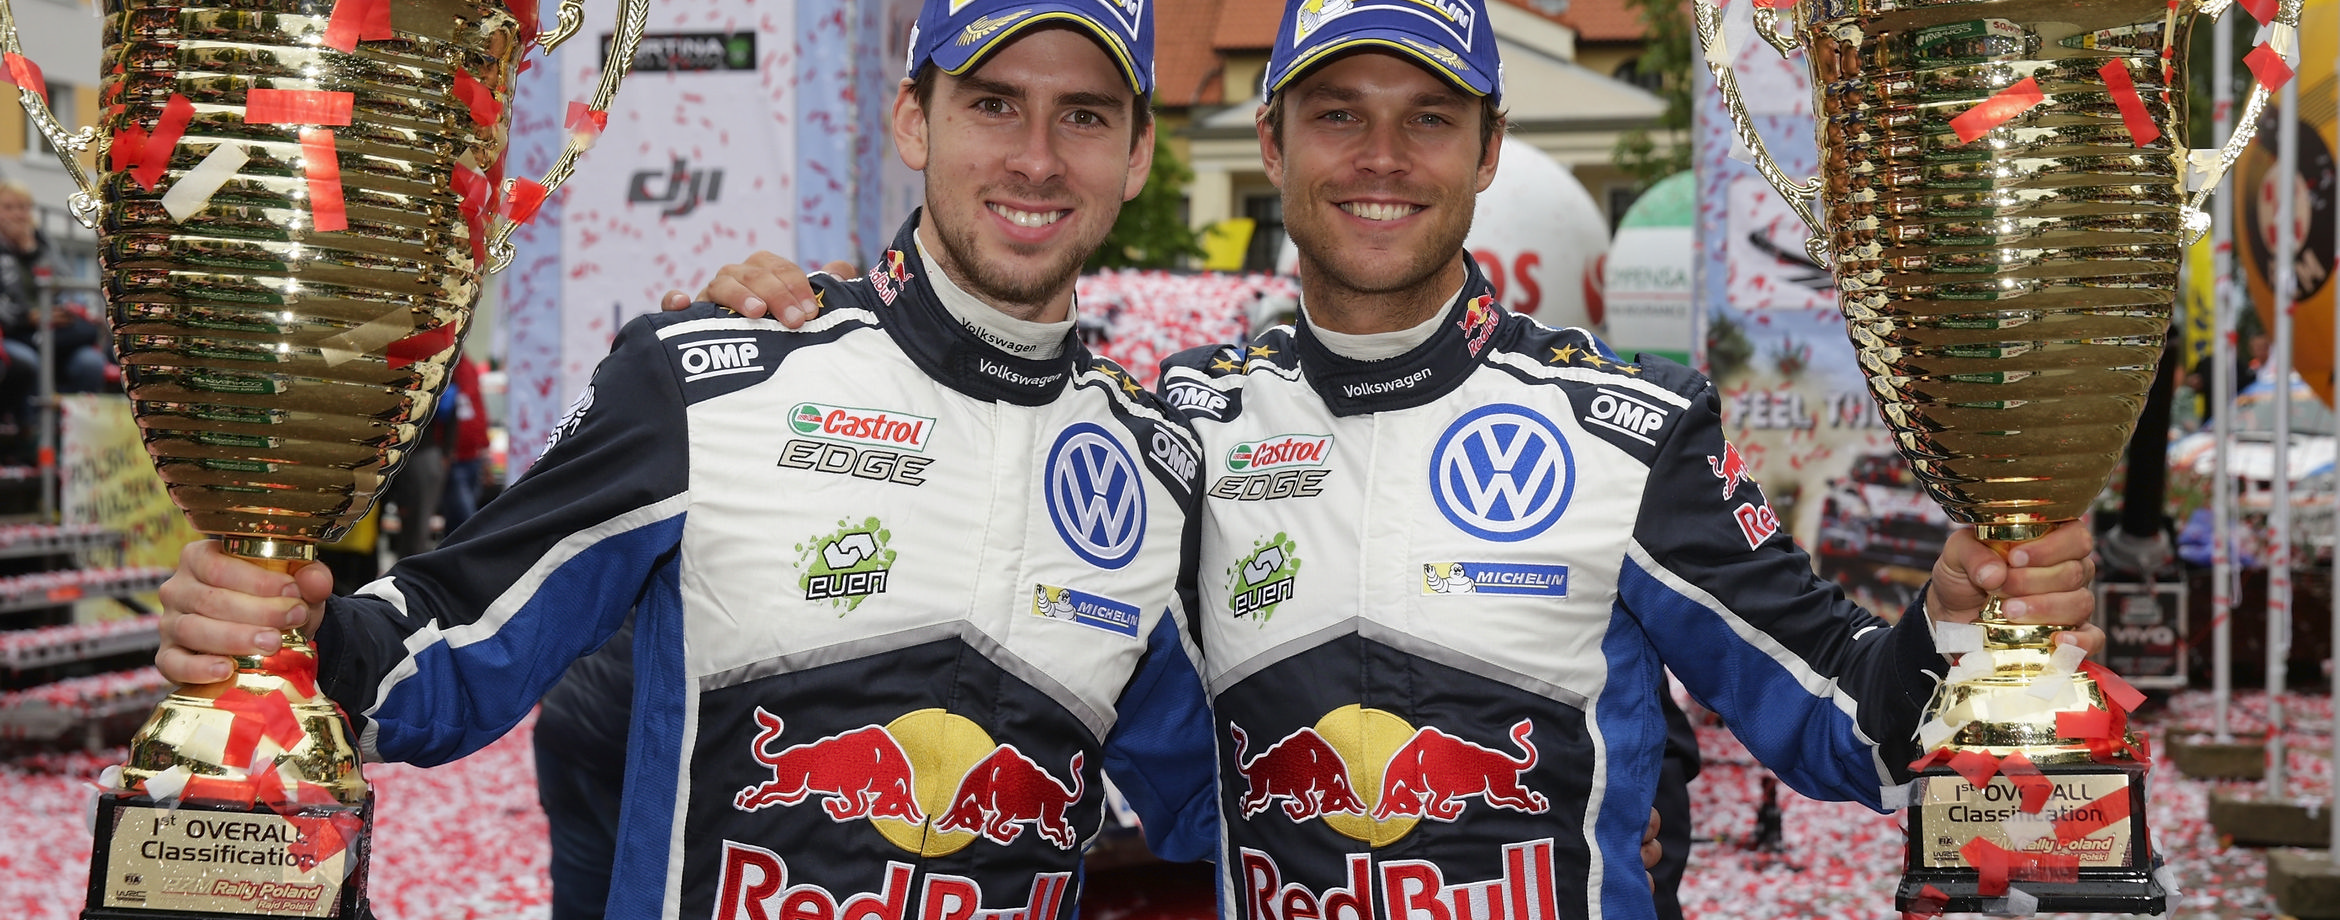 Mikkelsen WRC win in Poland